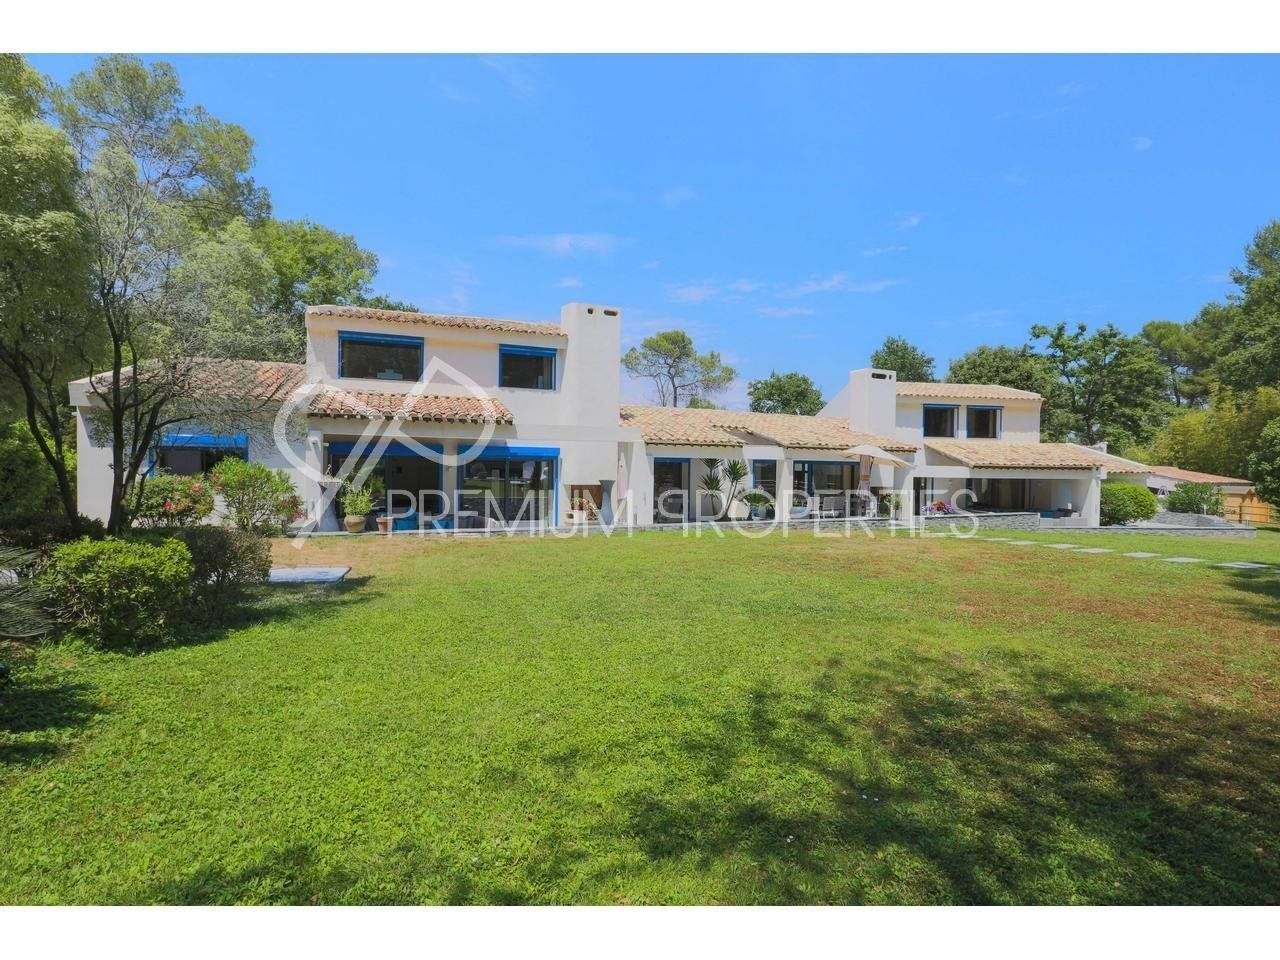 VALBONNE - SOMPTUOUS PROPERTY IN GATED DOMAIN Maison  10 Rooms 610m2  for sale  4200000 €